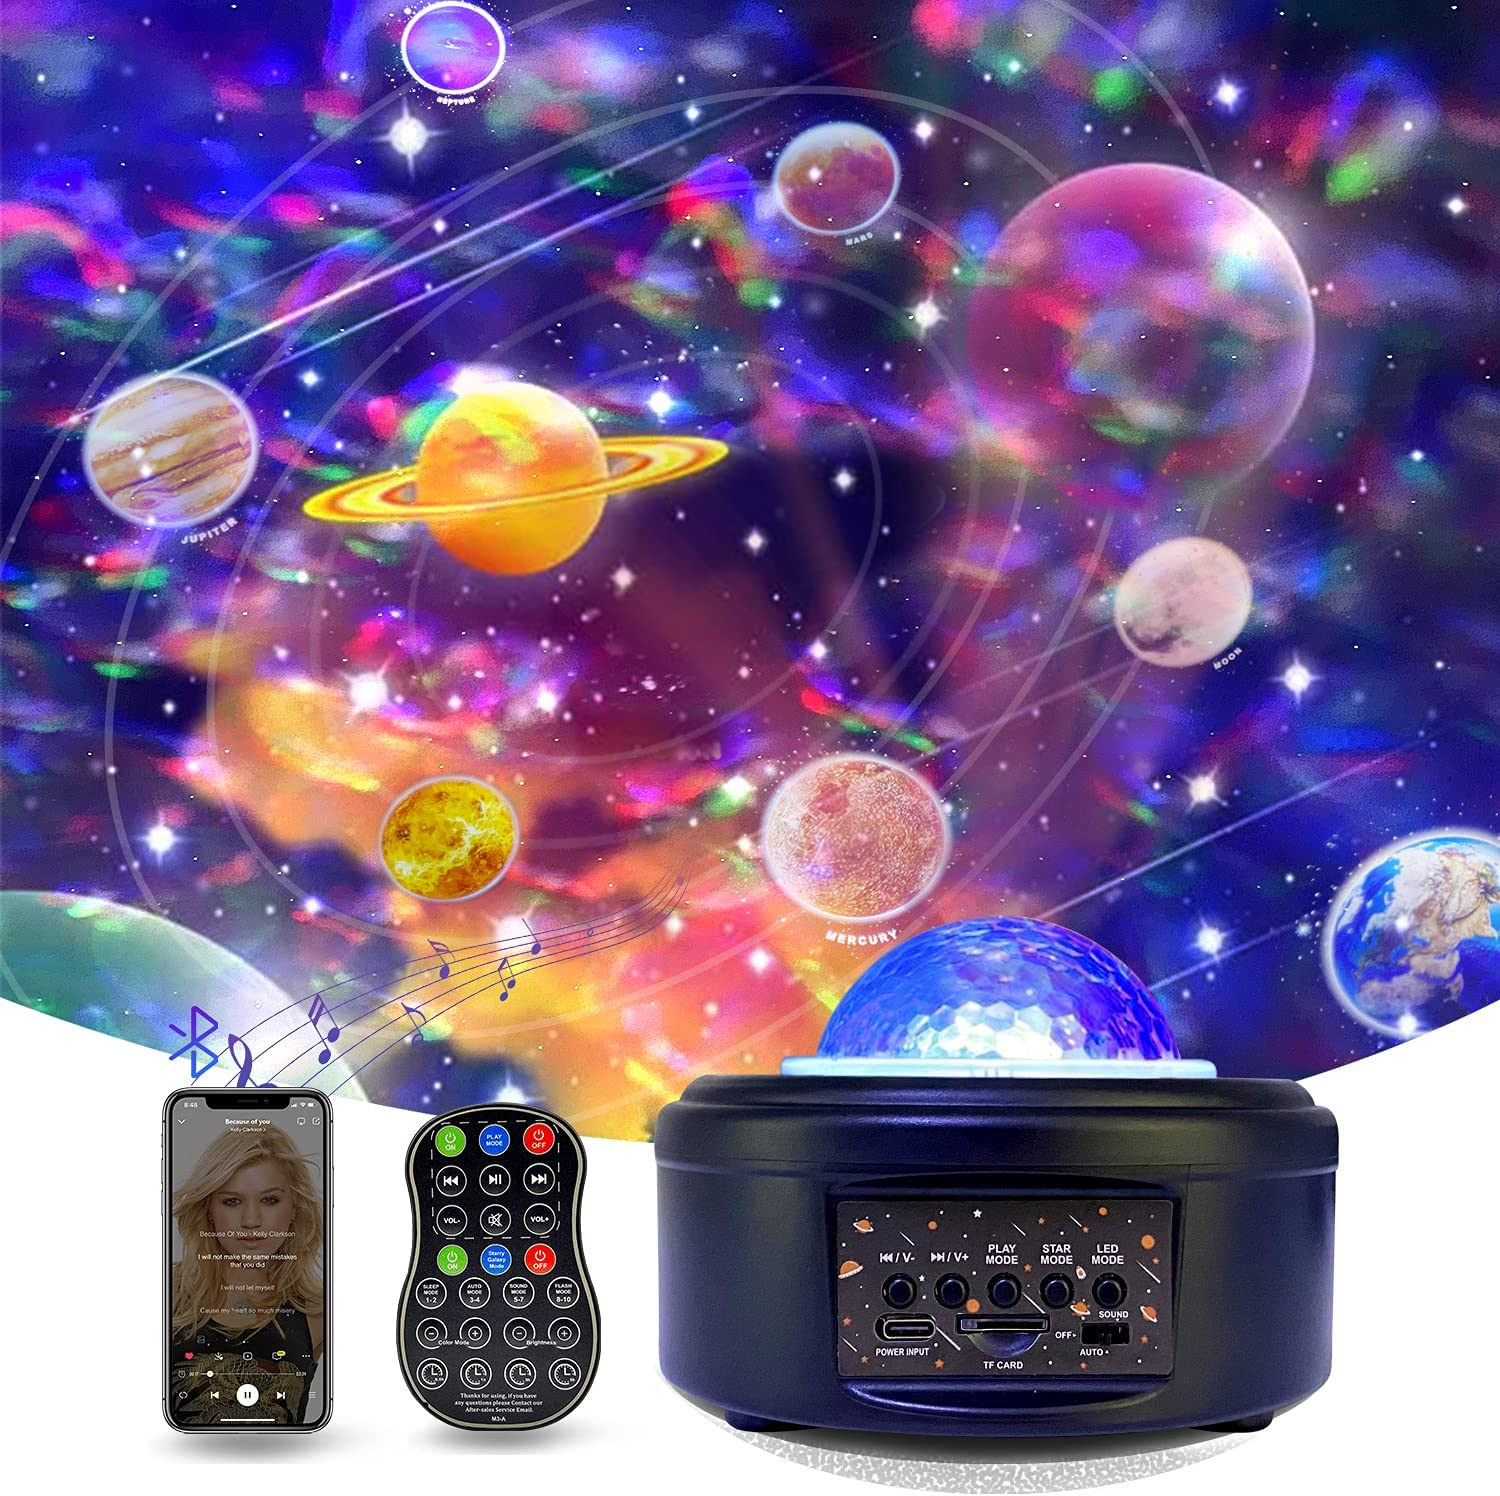 Planetarium Projector Galaxy Light Projector for Bedroom Star Projector Night Light with Voice Control & Bluetooth Speaker Ocean Wave Planet Projector for Kids Bedroom Ceiling Home Planetarium